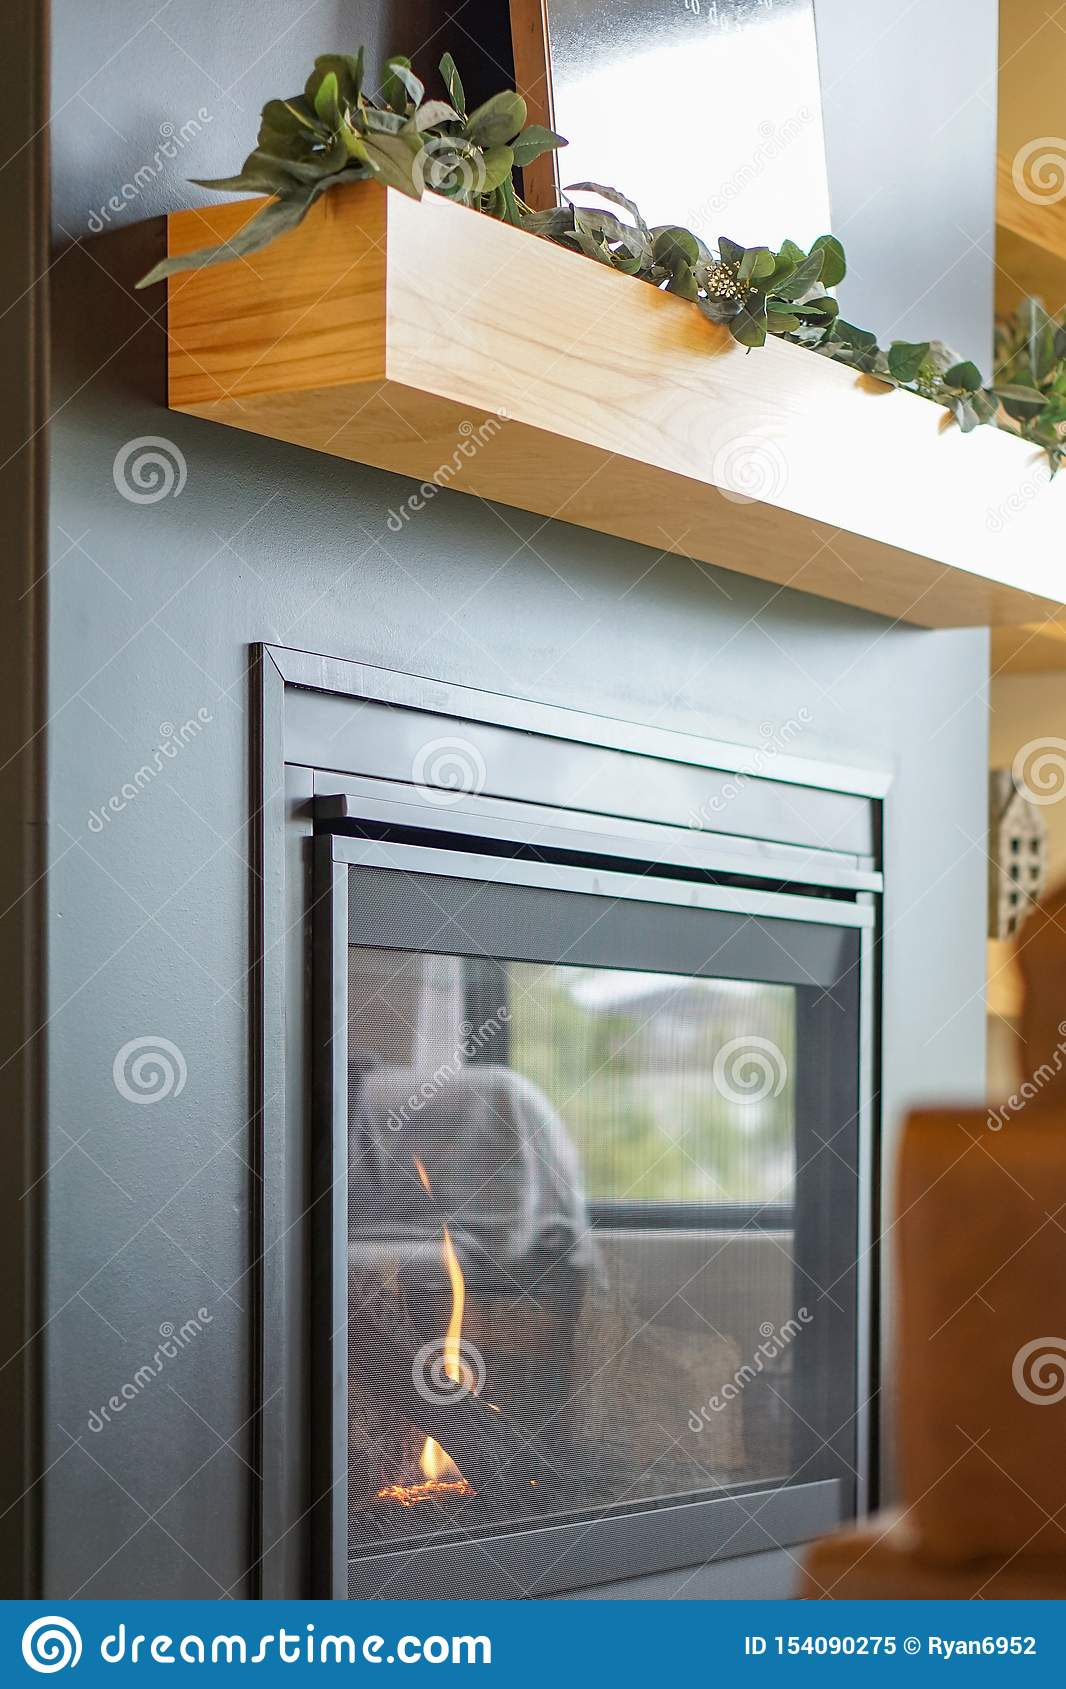 Modern Black Fireplace And Wooden Mantle Stock Image Image Of Wooden Decoration 154090275